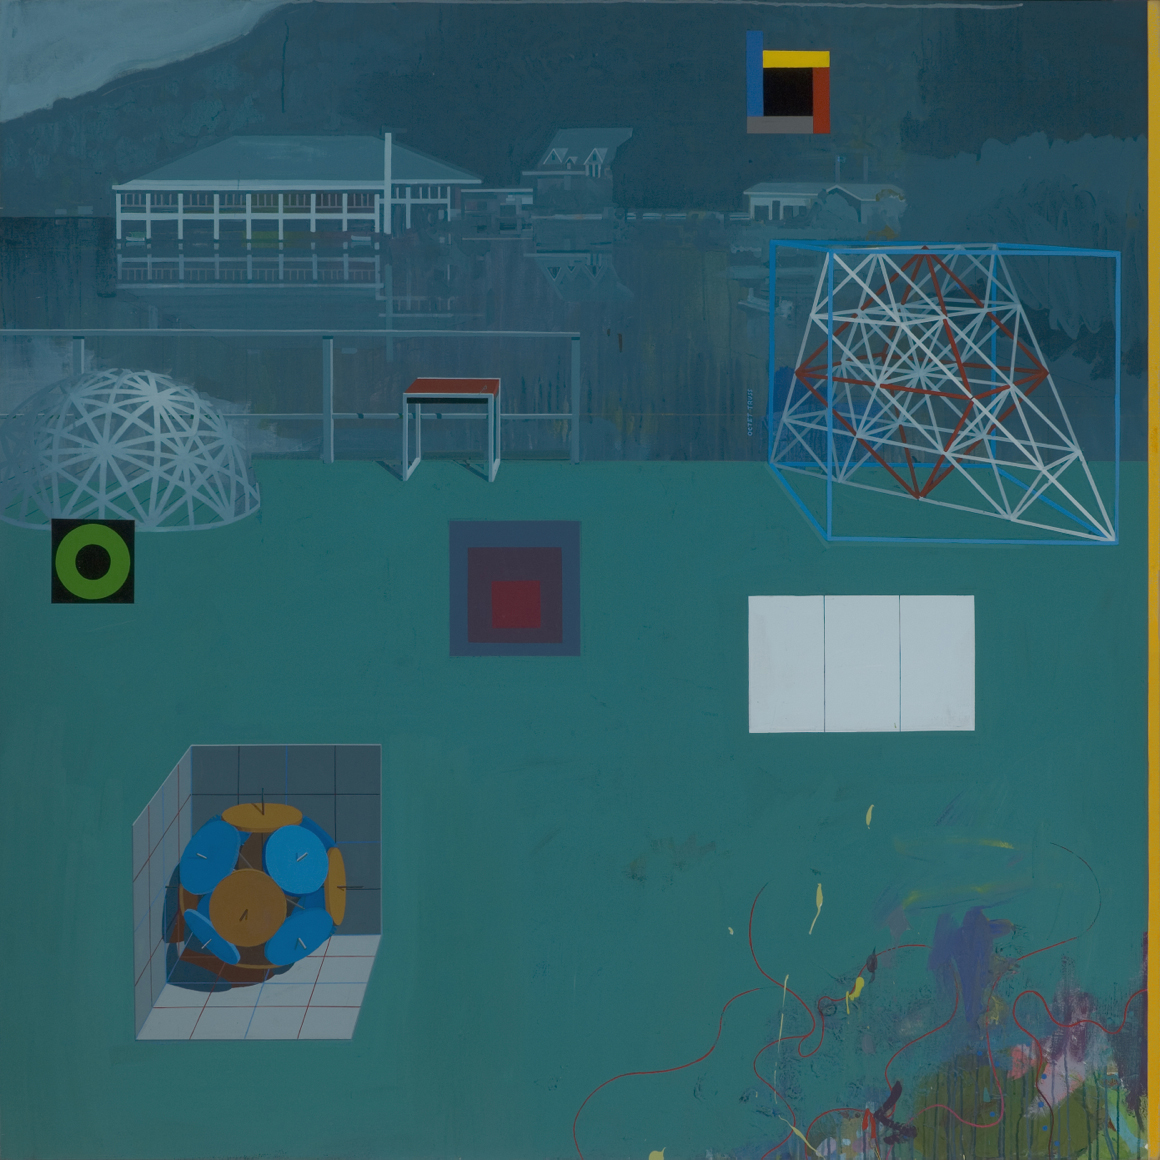 <p><em>Black Mountain College</em><span class='media'>acrylic on canvas</span>70 x 70 in  (177.8 x 177.8 cm)<br>2013<br><a class='inquire' href='mailto:info@gildargallery.com?subject=Artwork Inquiry CRIC0009&body=I am interested in finding out more about Black Mountain College by Clark Richert'>Inquire</a></p>